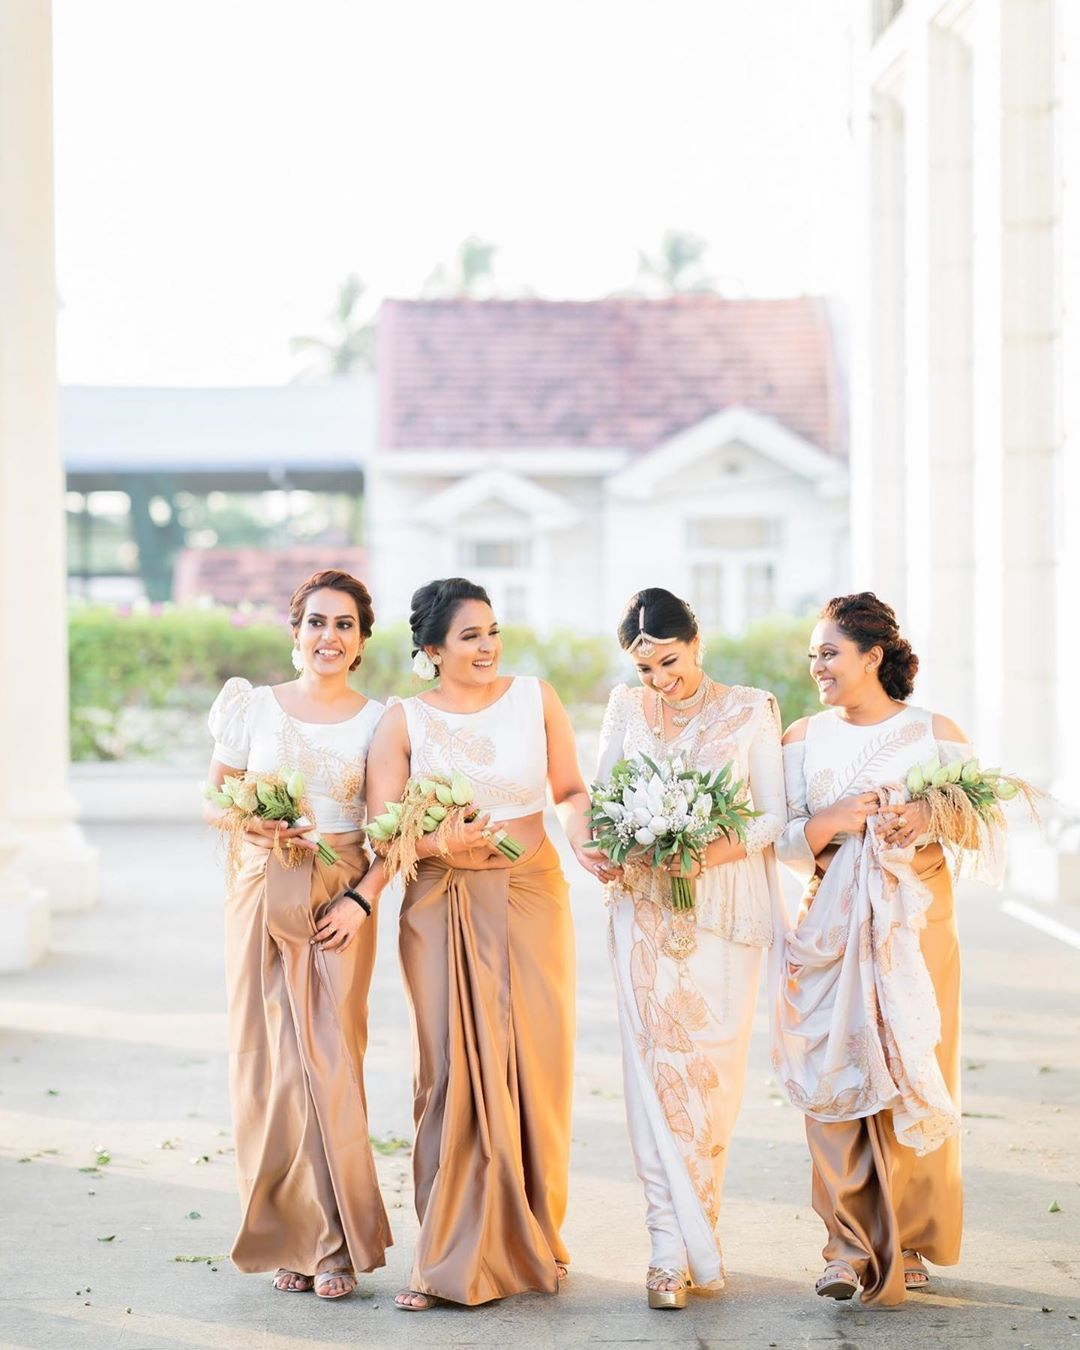 Beautiful Sri Lankan Bridesmaids In 2020 Bridesmaid Wedding Bridesmaids Bride